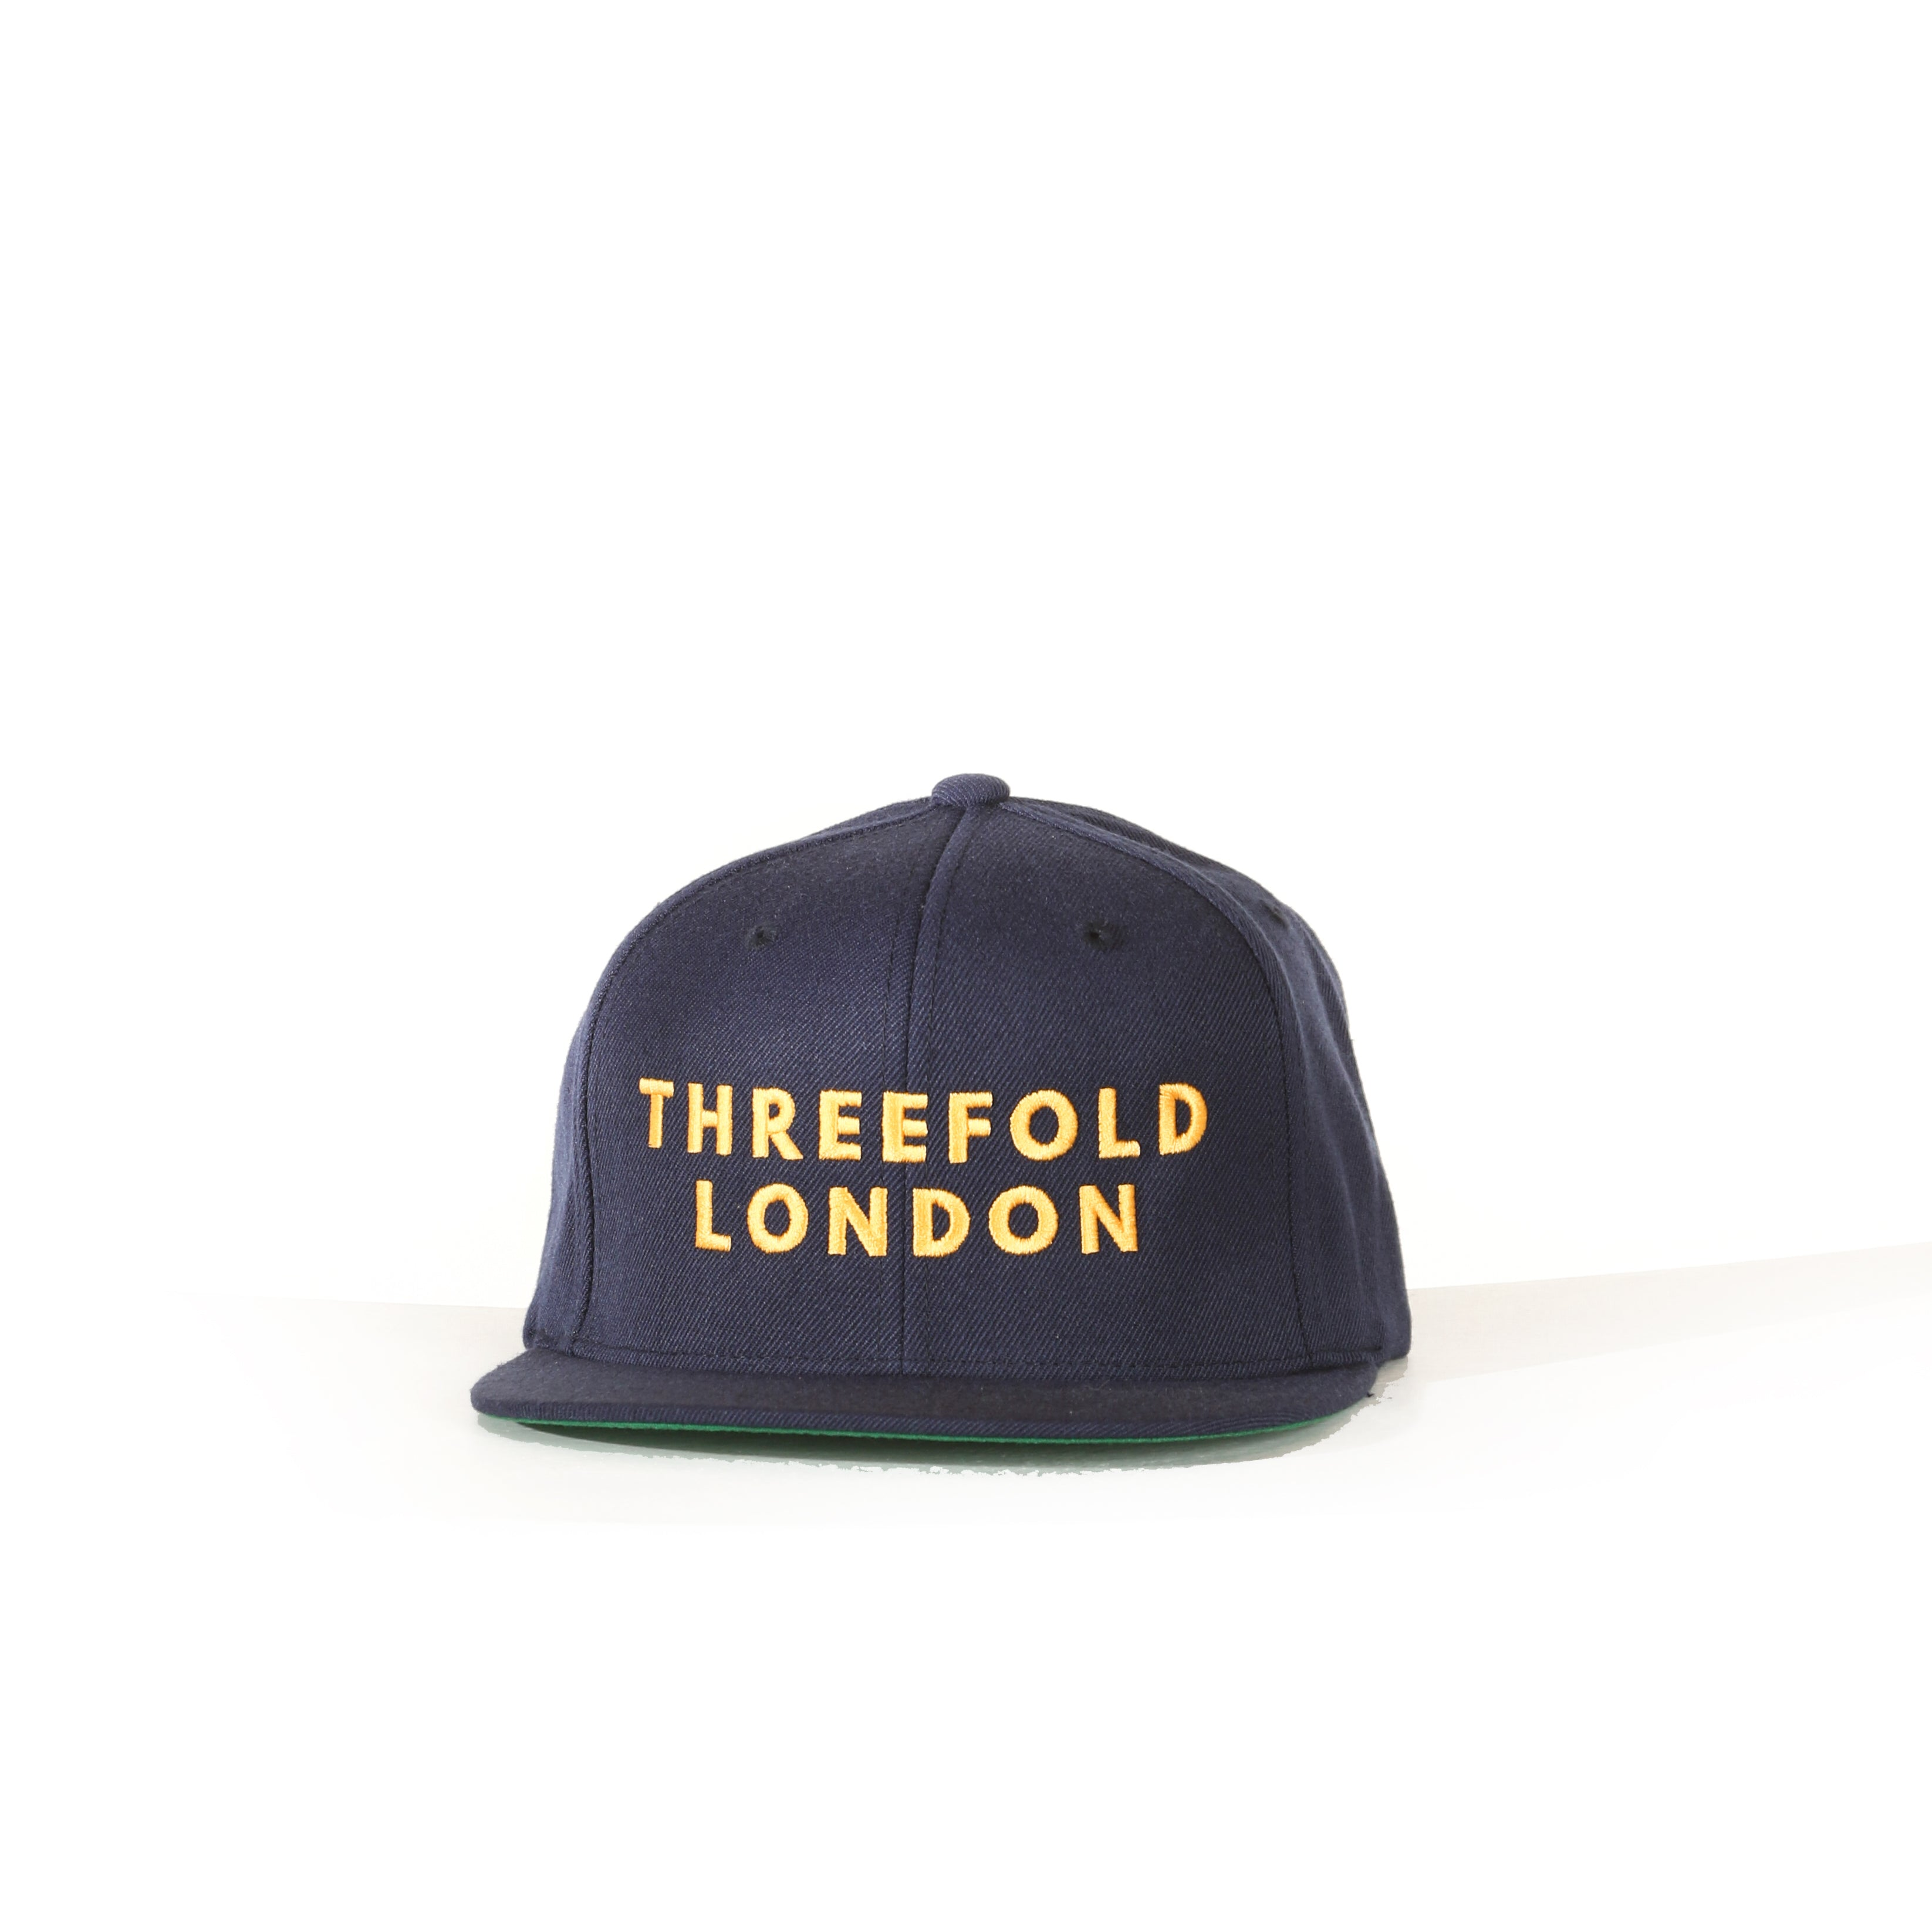 Limited Edition  Classic Snapback Cap in Navy Blue   Gold ... c2bd61a2532e